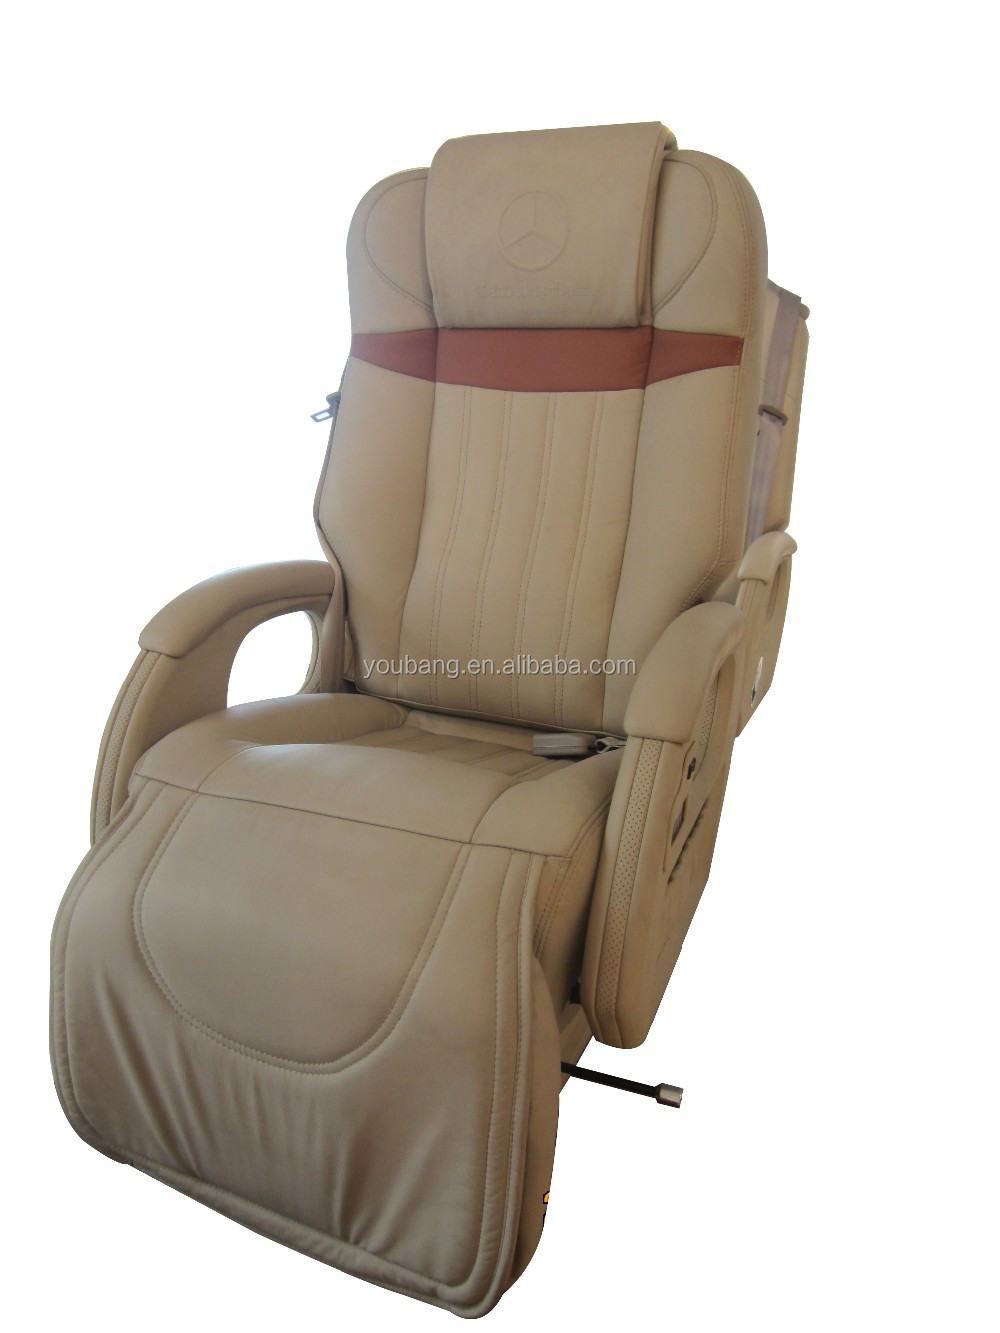 New Designed Vip luxury coach bus seat with with CCC and Emark standard